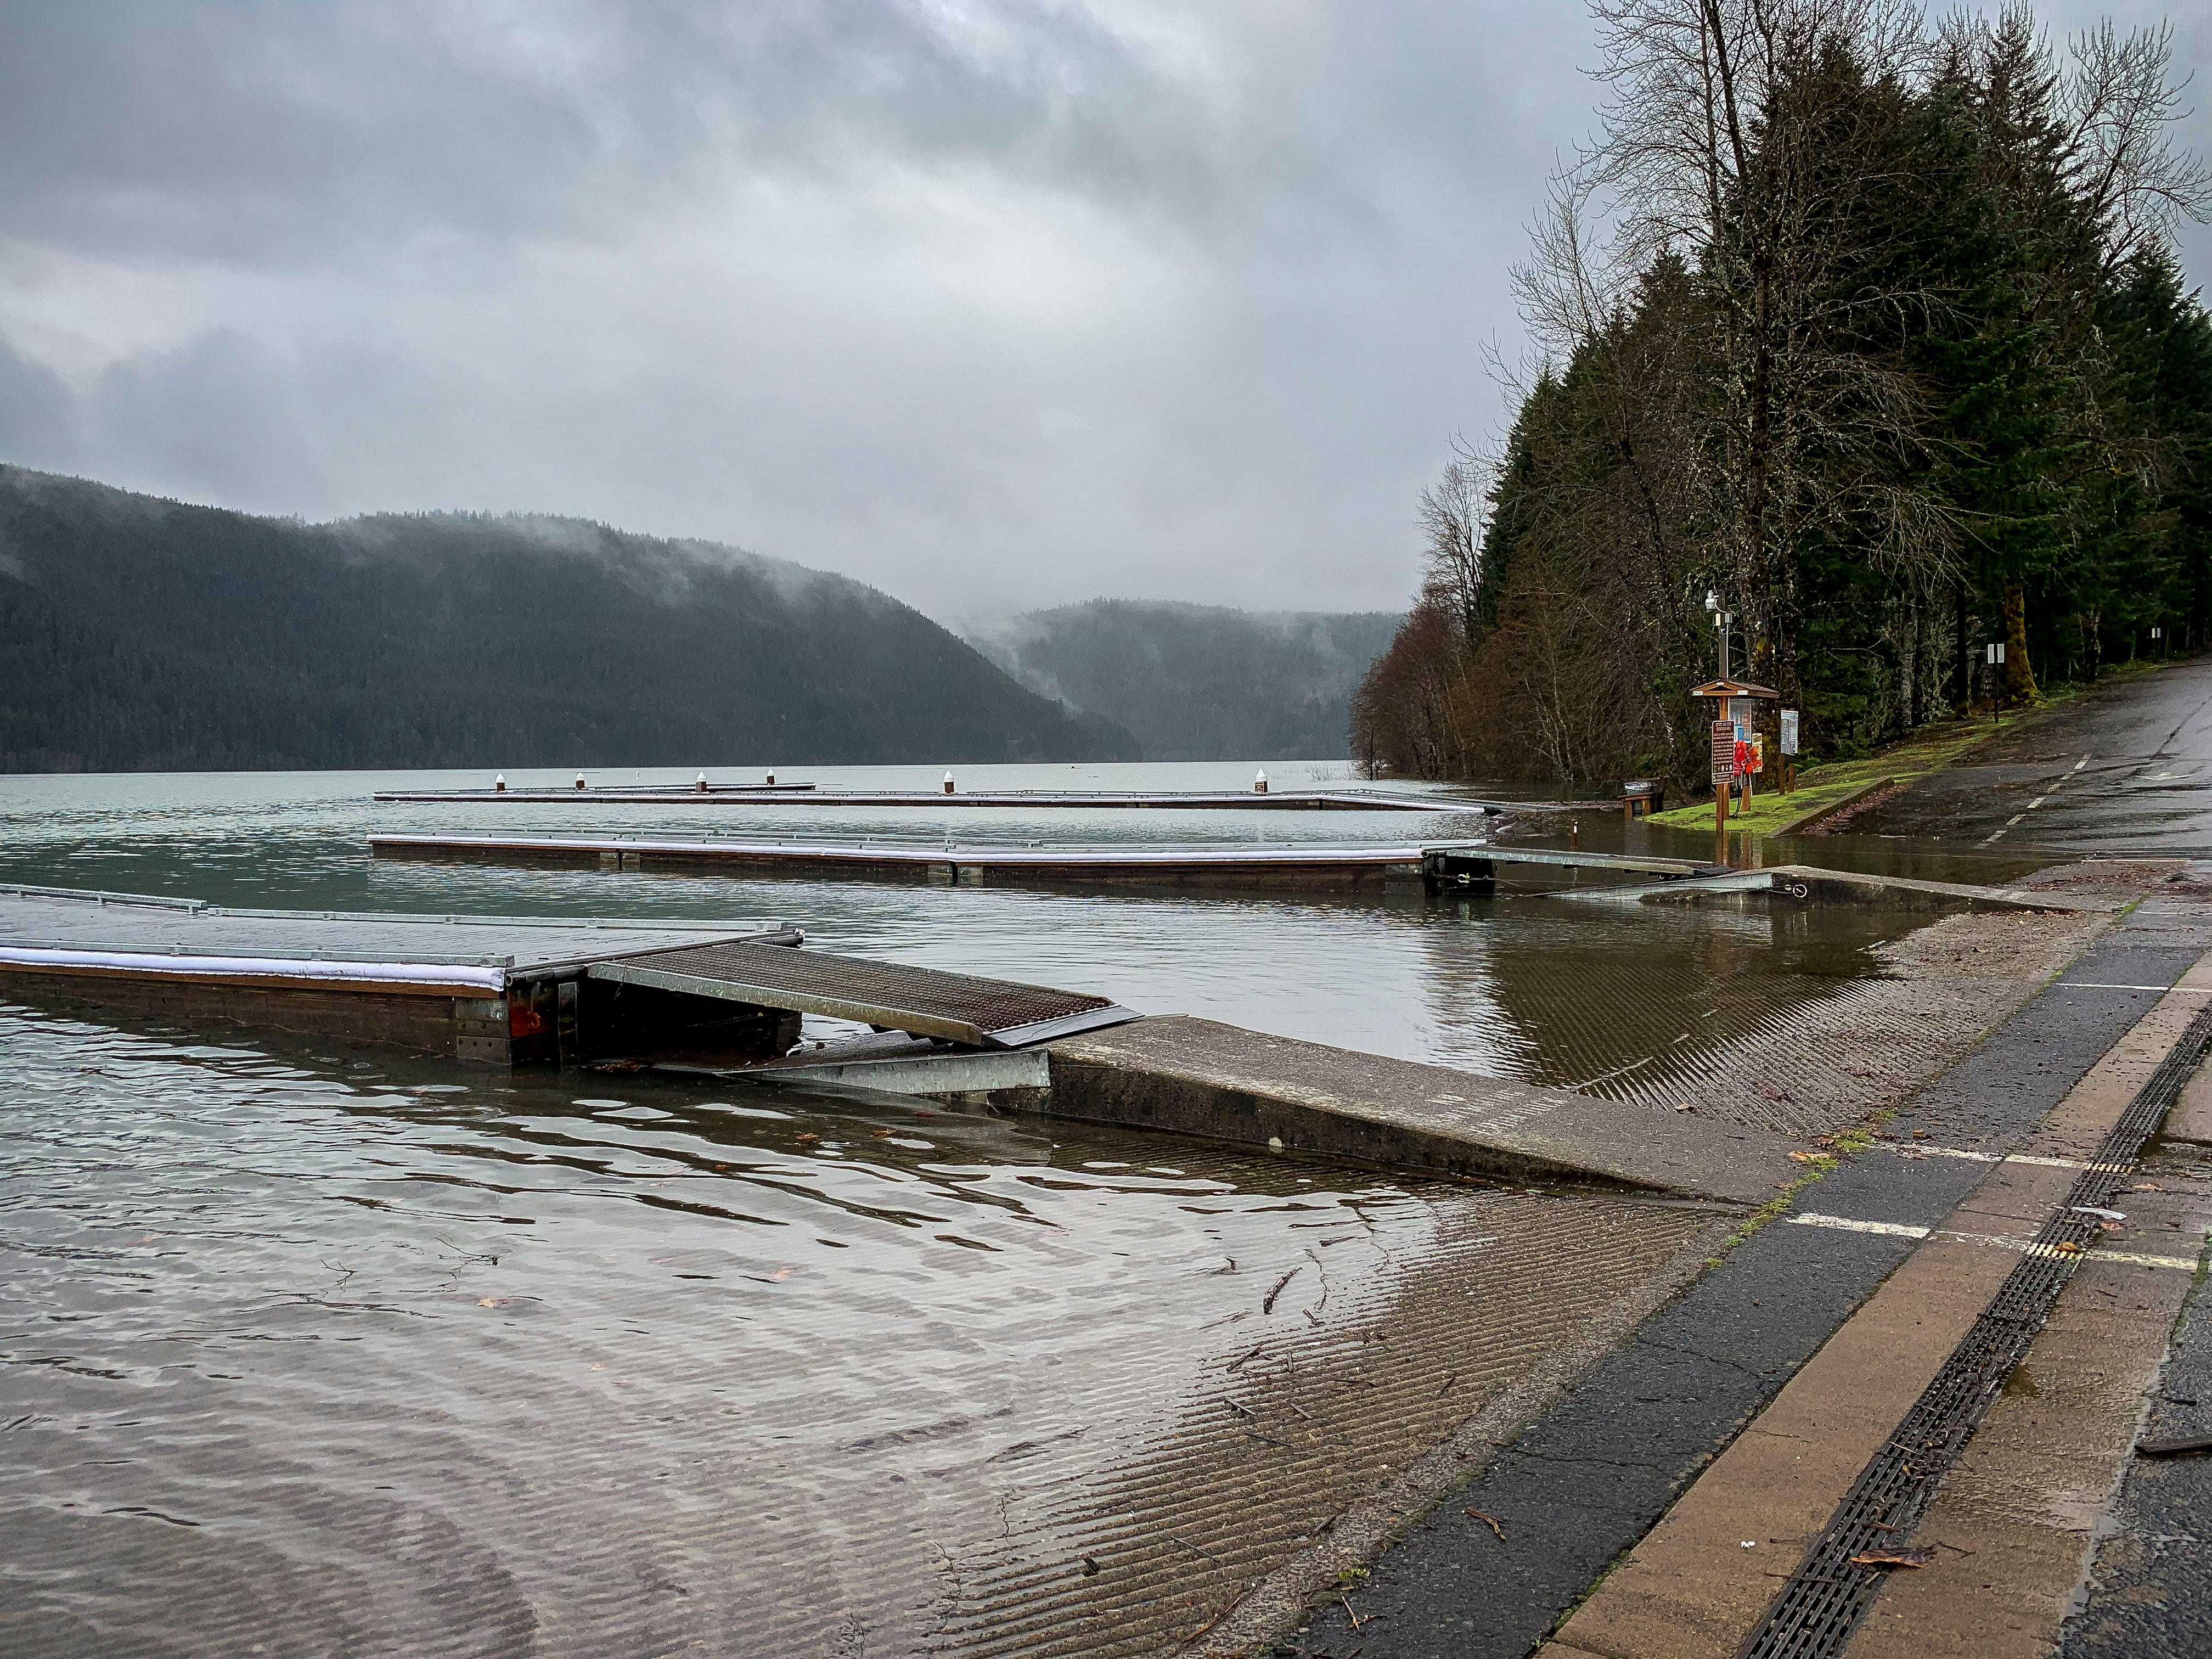 Due to a combination of rain and snow melt, Detroit Lake has risen 45 feet in five days to reach 'full pool' with weeks until the summer season officially begins. The summer boat docks are the only ones visible with the winter area completely submerged.